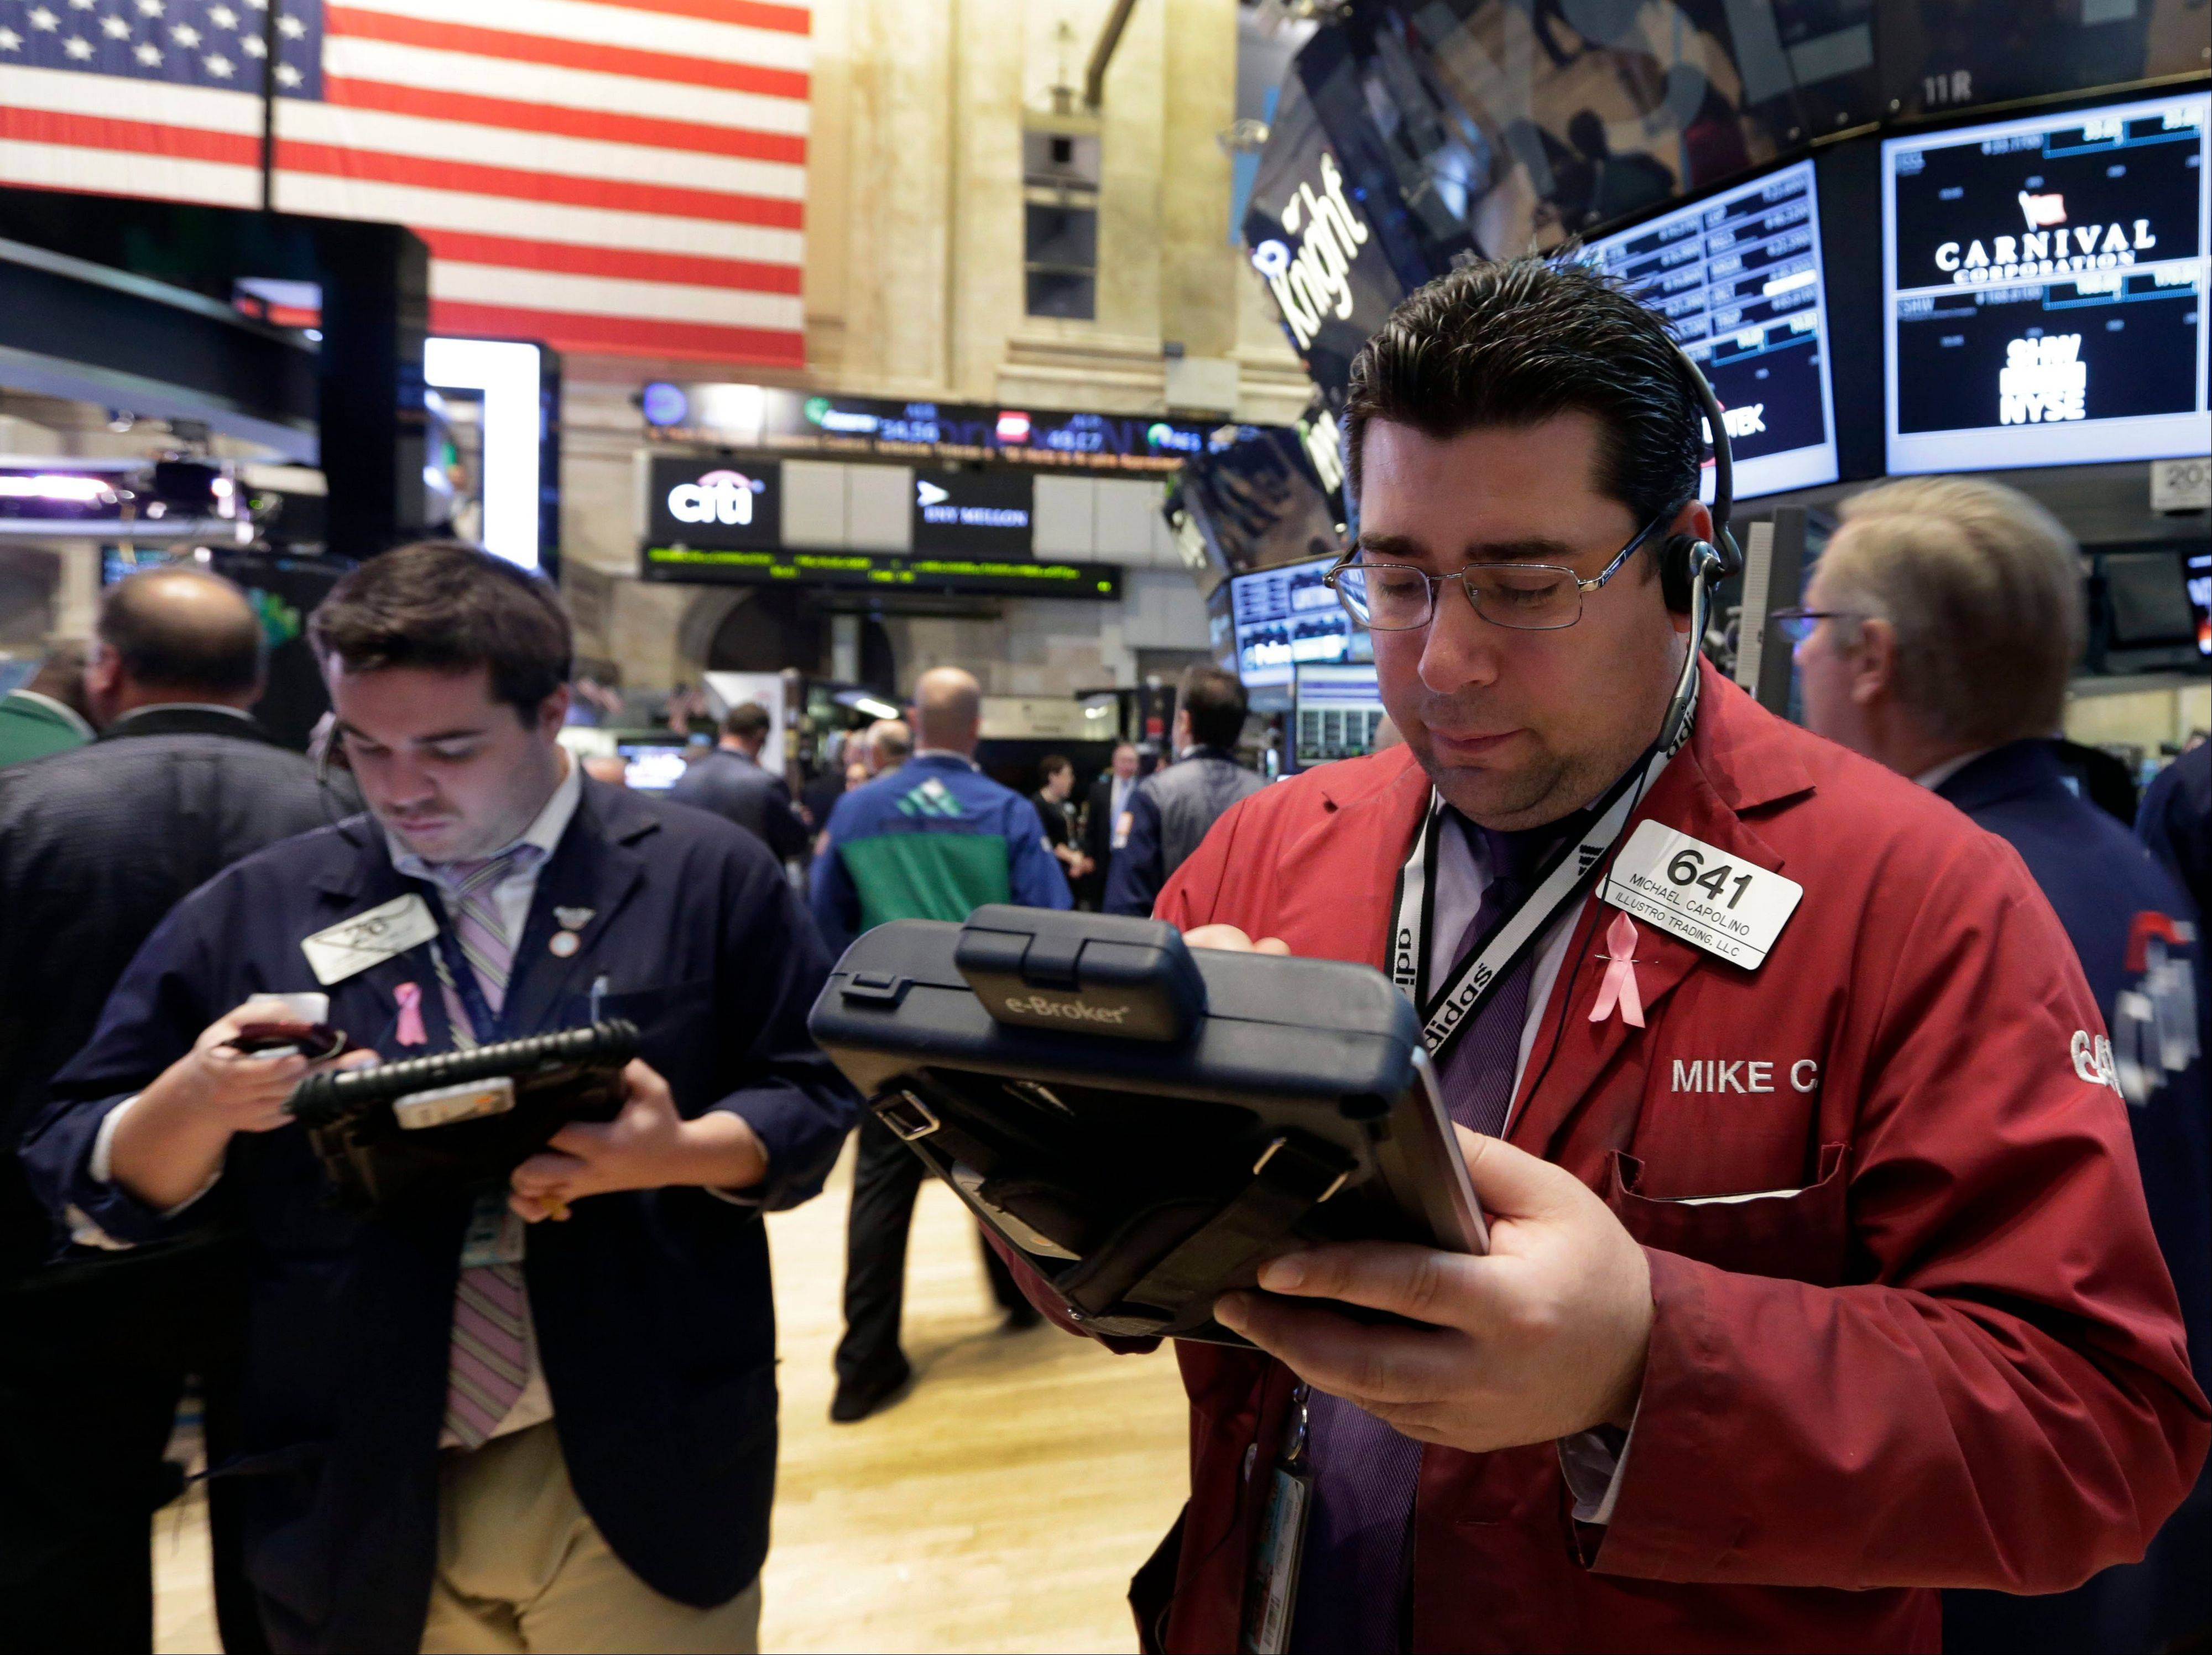 Michael Capolino, right, works with fellow traders on the floor of the New York Stock Exchange Tuesday, April 16, 2013. Stocks are sharply higher in early trading, a day after the market's worst drop this year, as the government reported a surge in home construction last month.